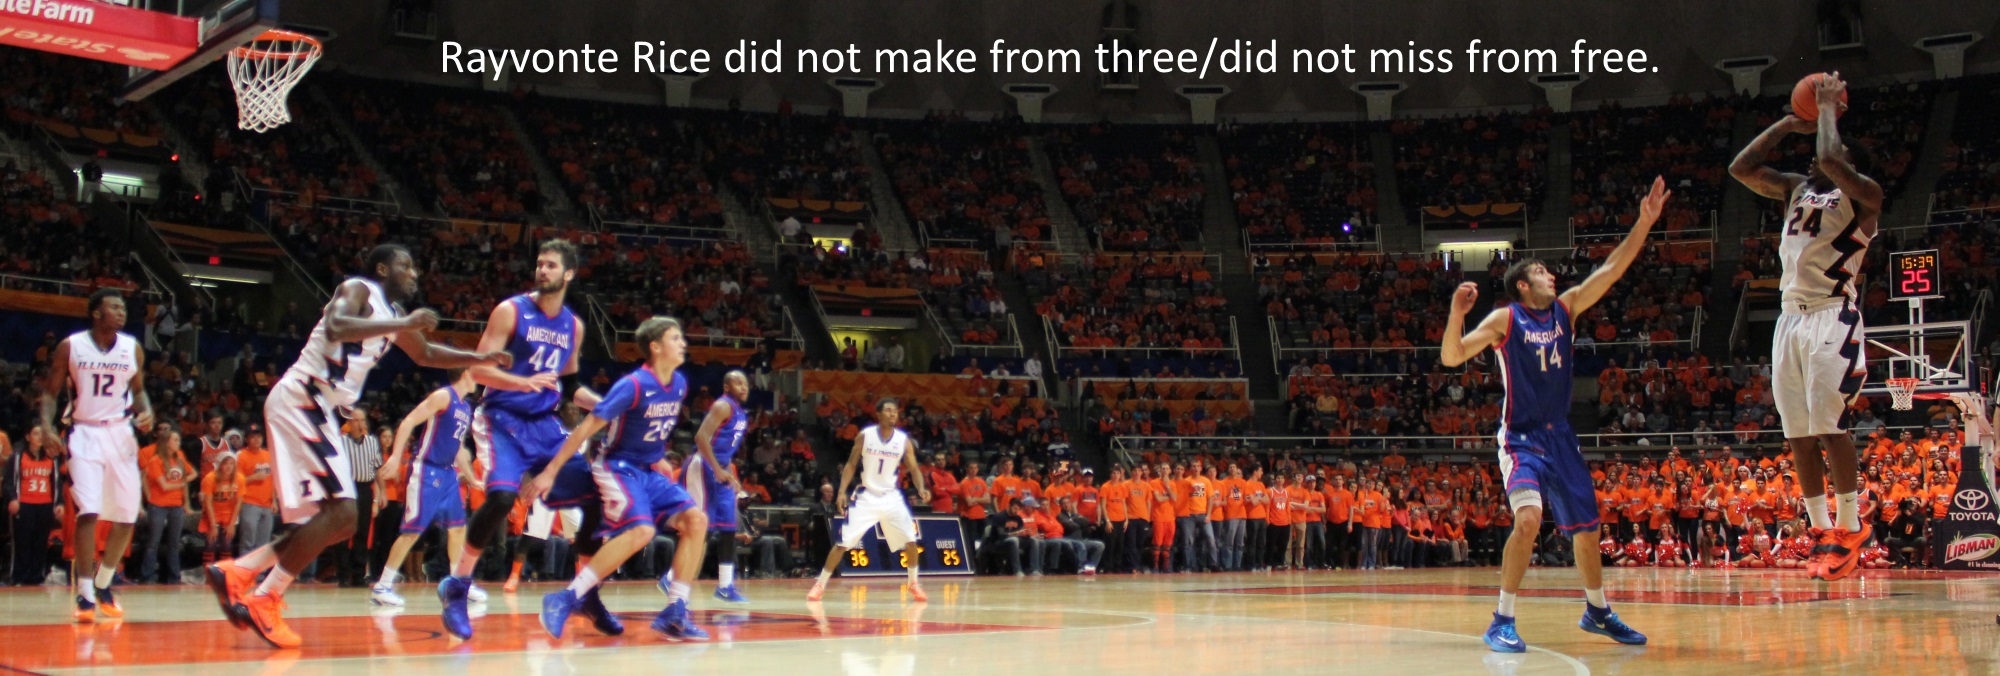 Rayvonte Rice did not make from three did not miss from free